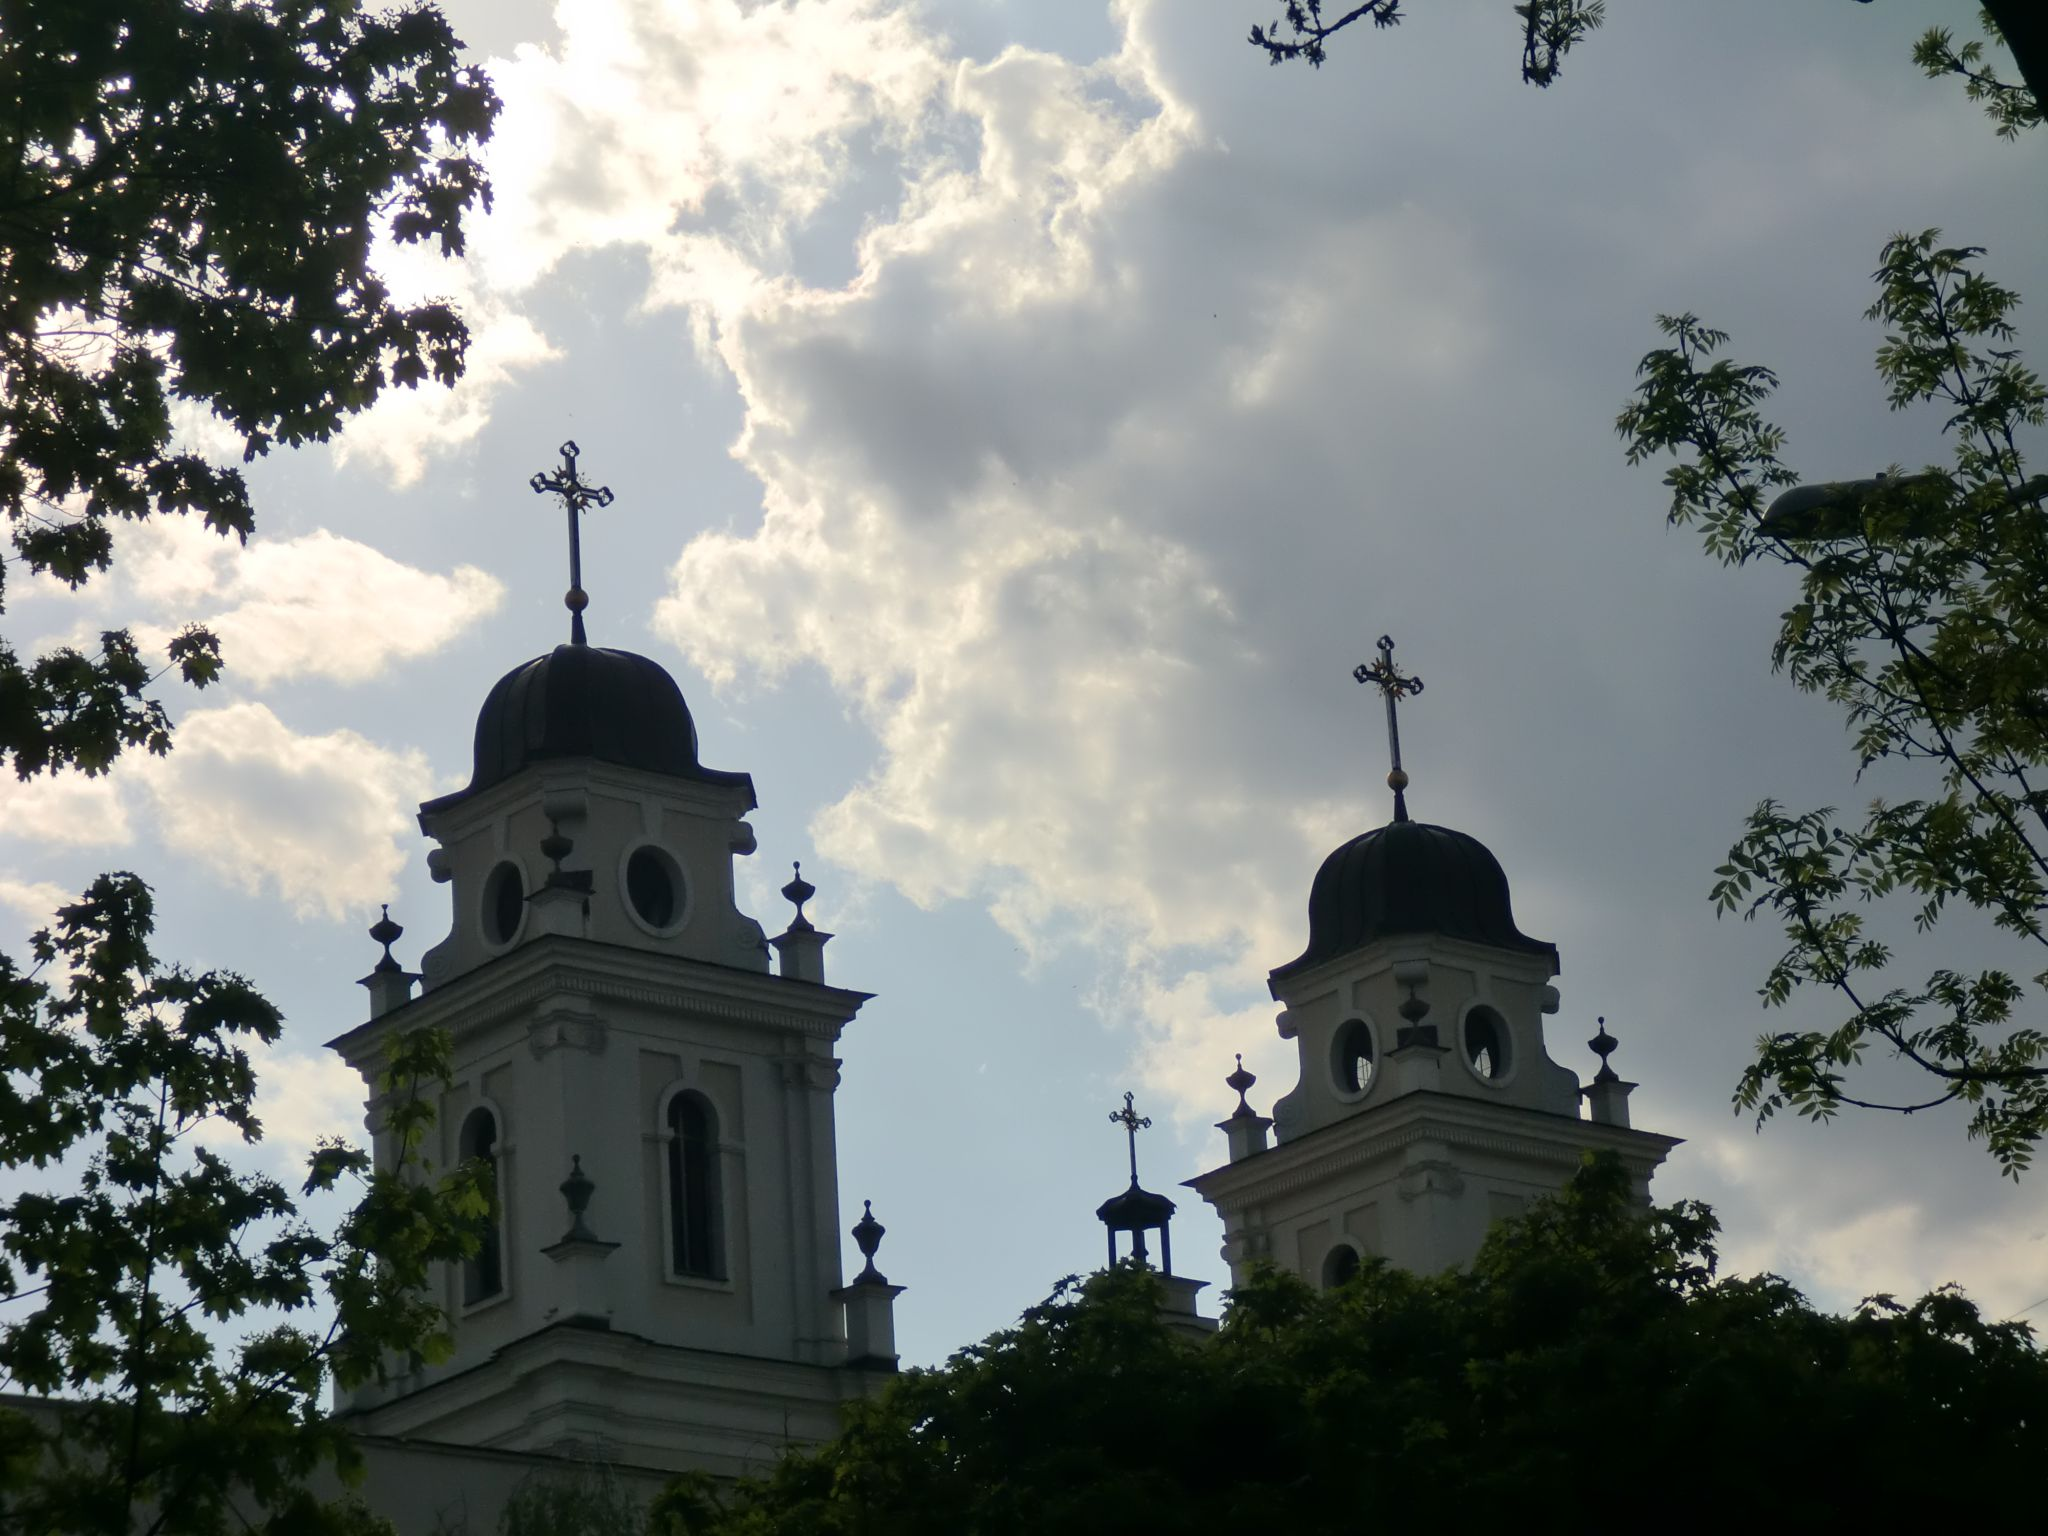 Minsk old town 4 - Minsk, 1 amazing city you have to see